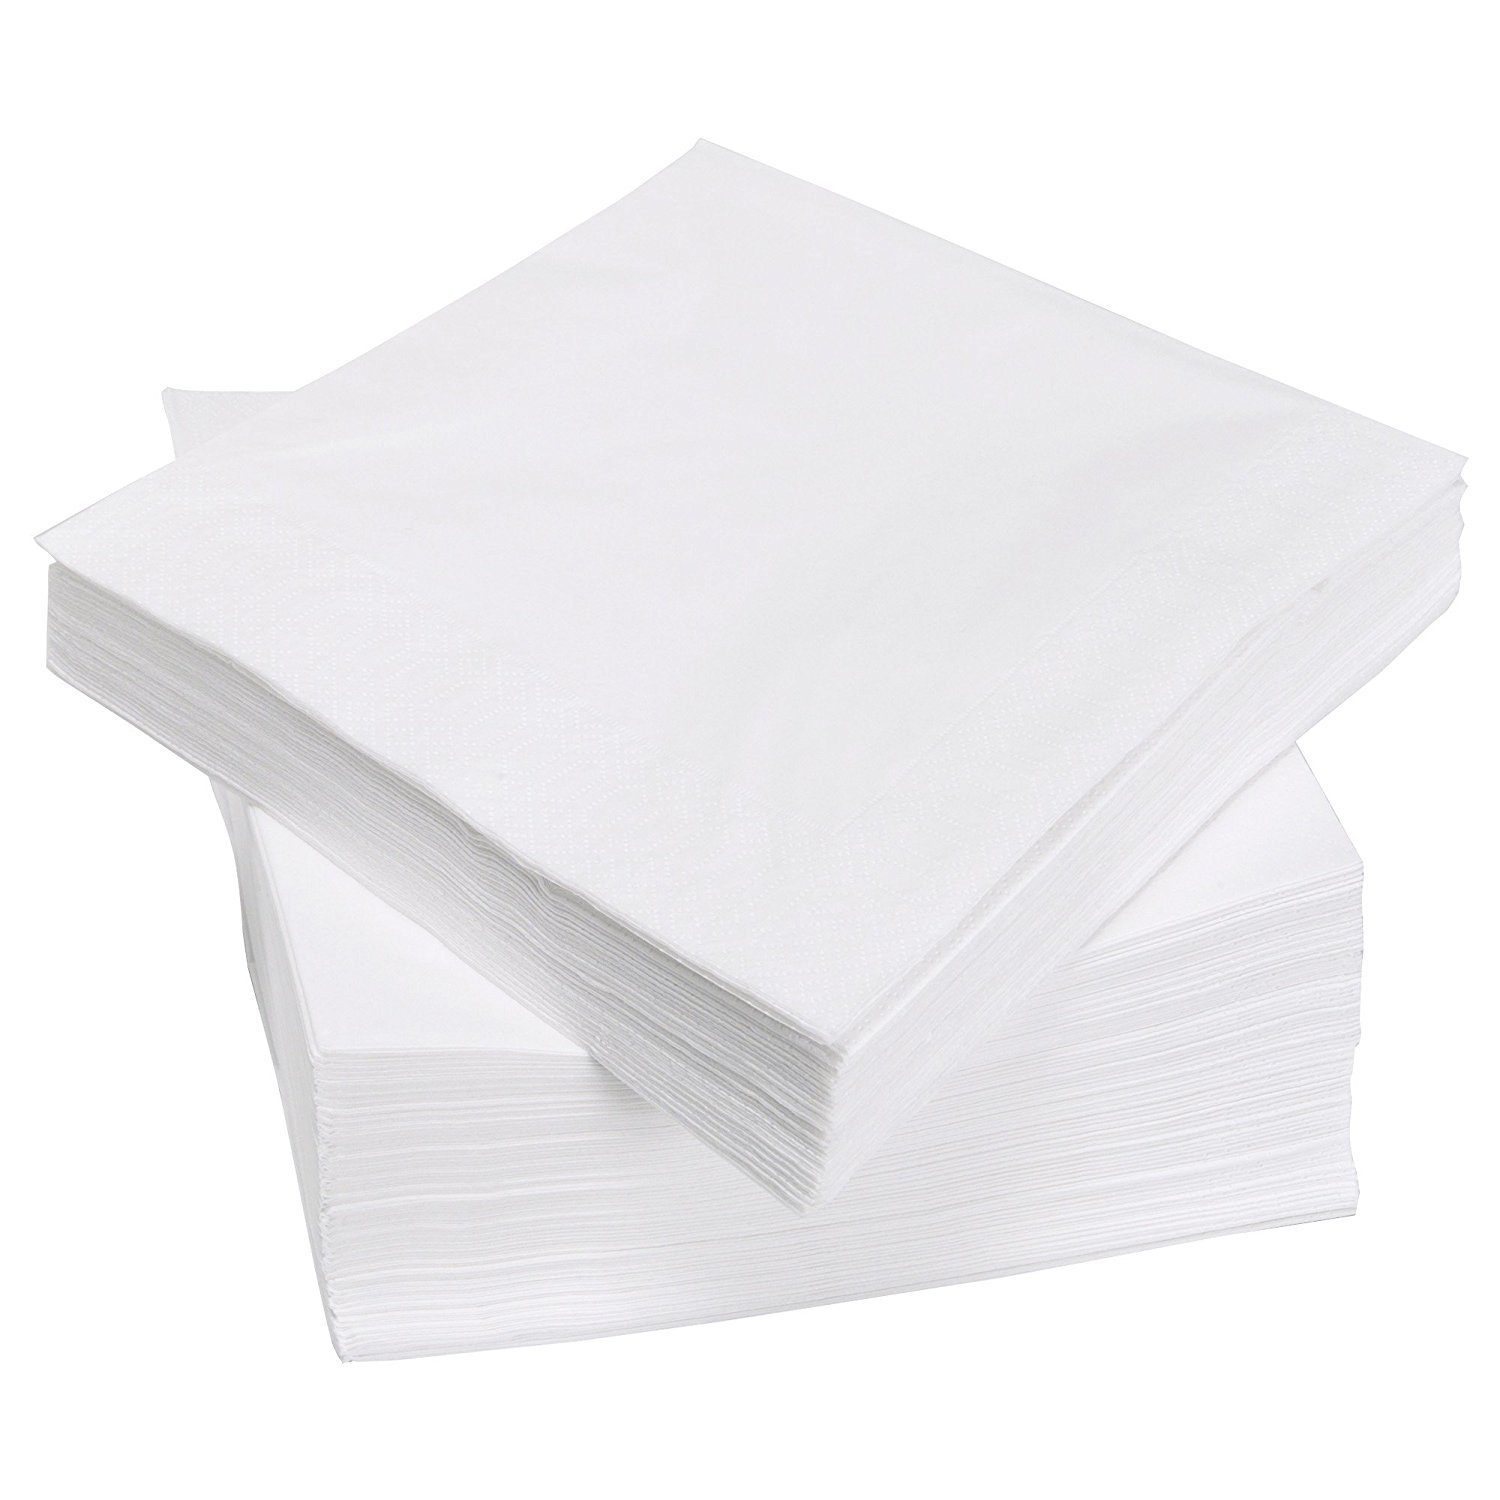 Perfect Stix Cocktail Napkins- 4000 Beverage Napkins, White 1-Ply, Case of 4000 (Pack of 4000)